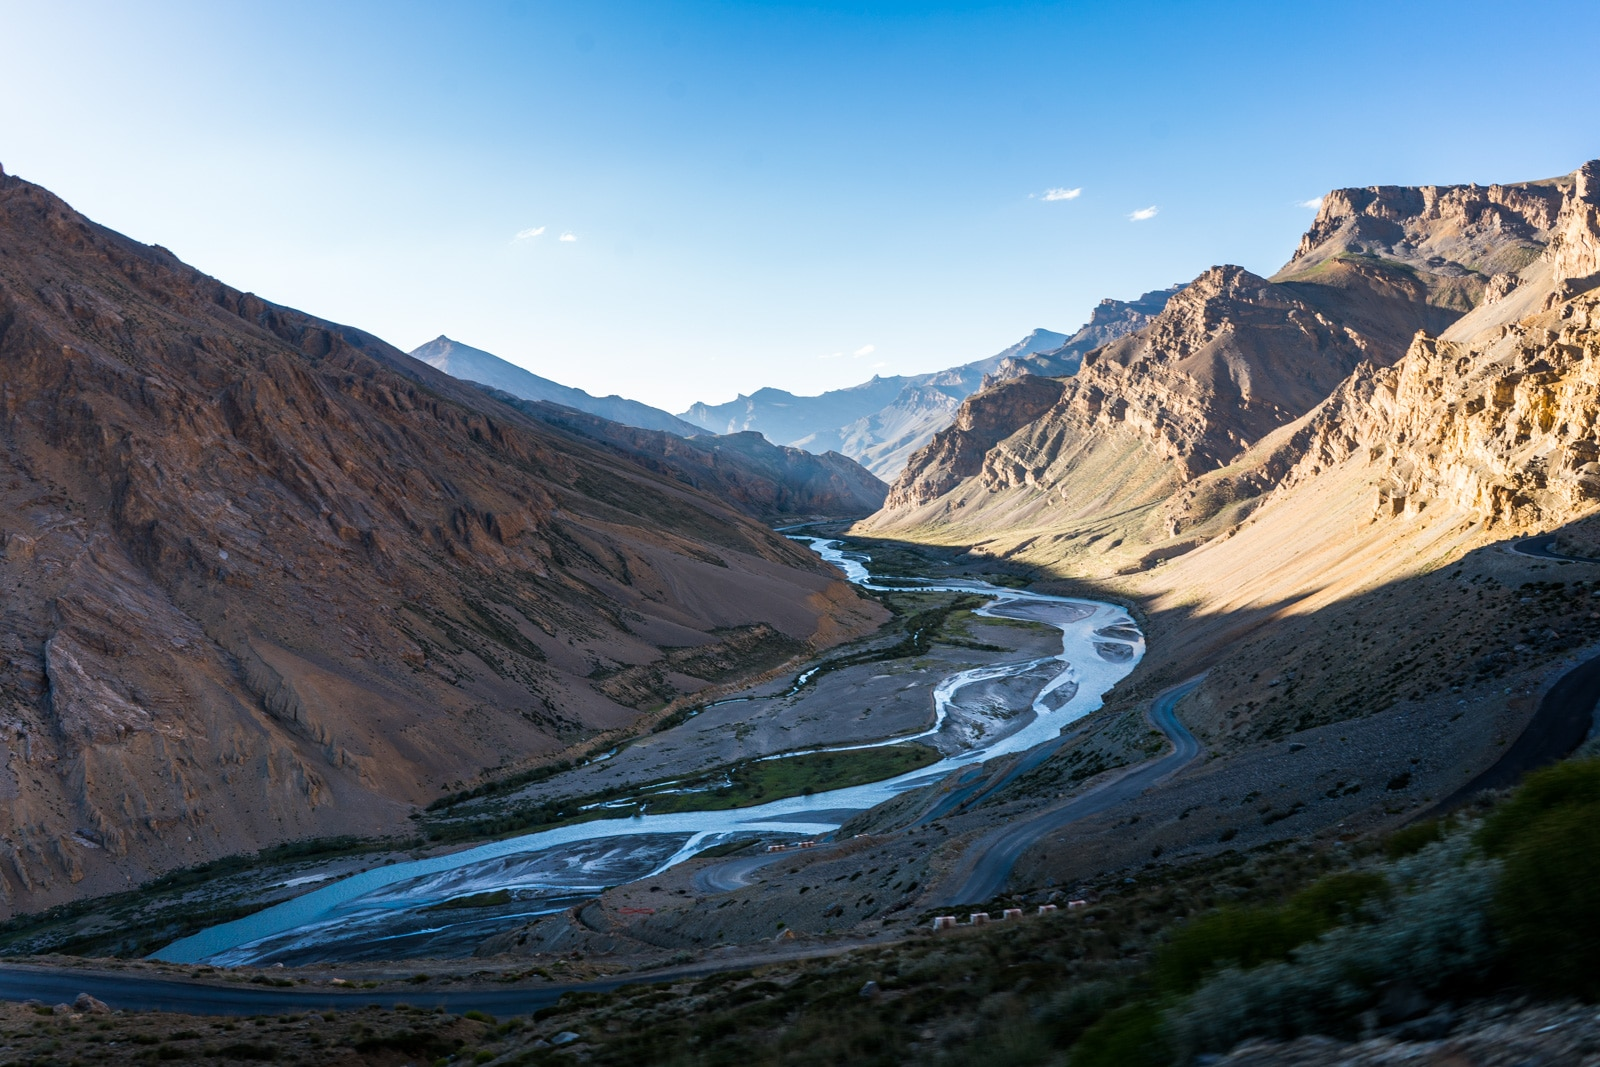 Hitchhiking the Leh - Manali highway - A river running through Ladakh - Lost With Purpose travel blog